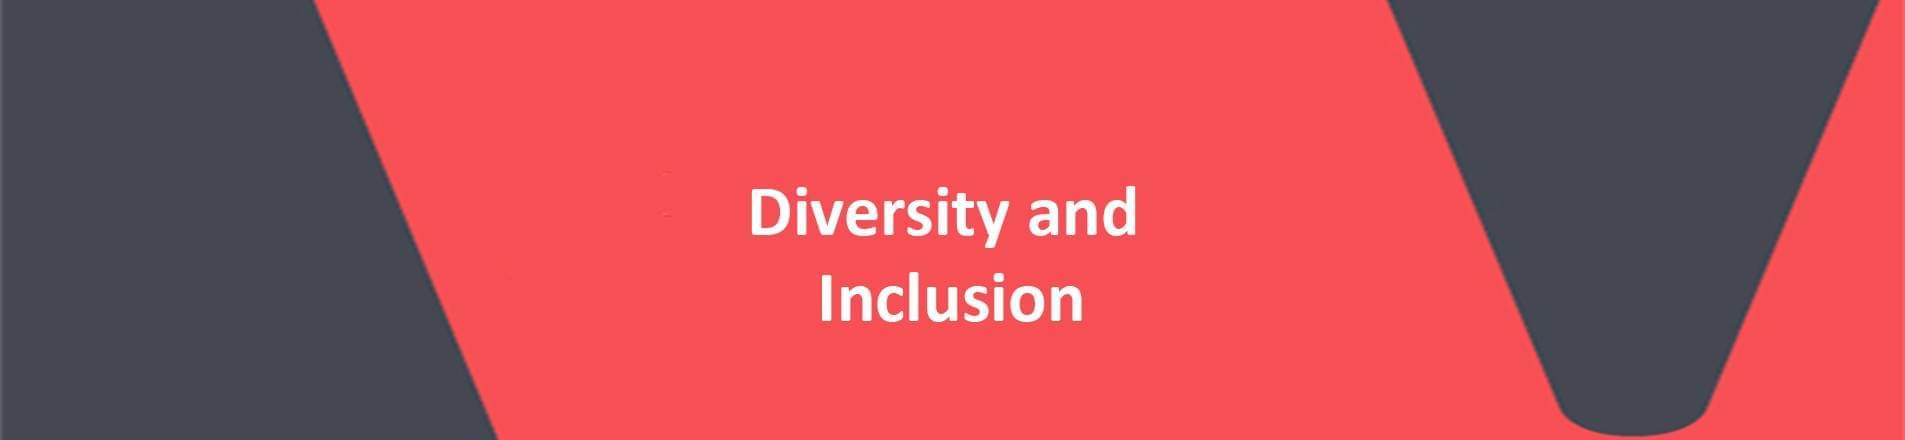 Diversity and Inclusion text with Vercida Colours